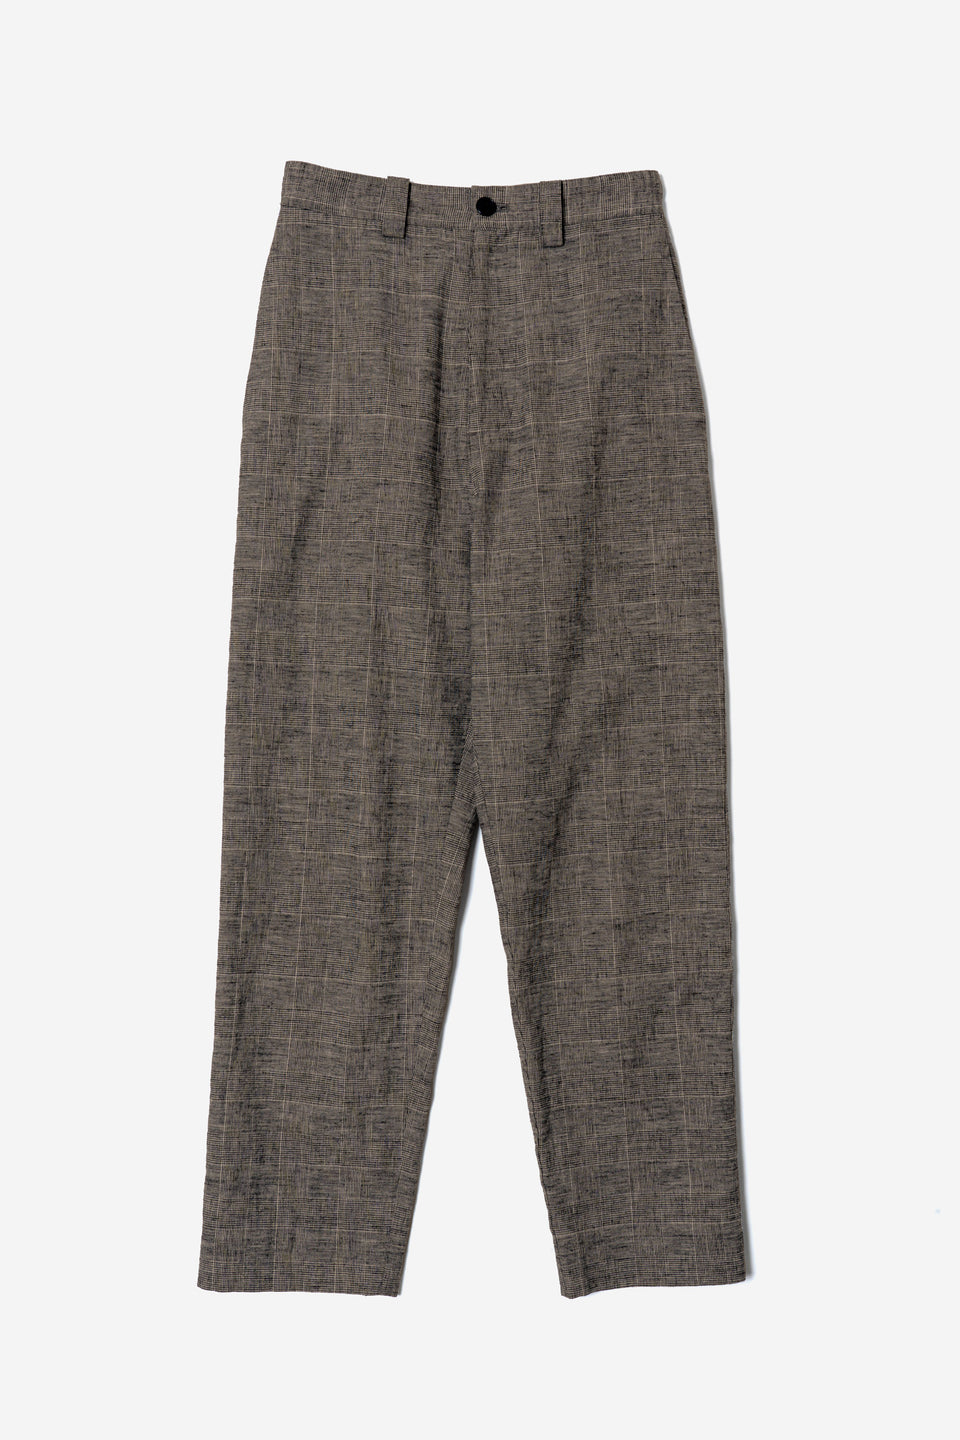 Co/Li Check Balloon Pants in Beige Mix